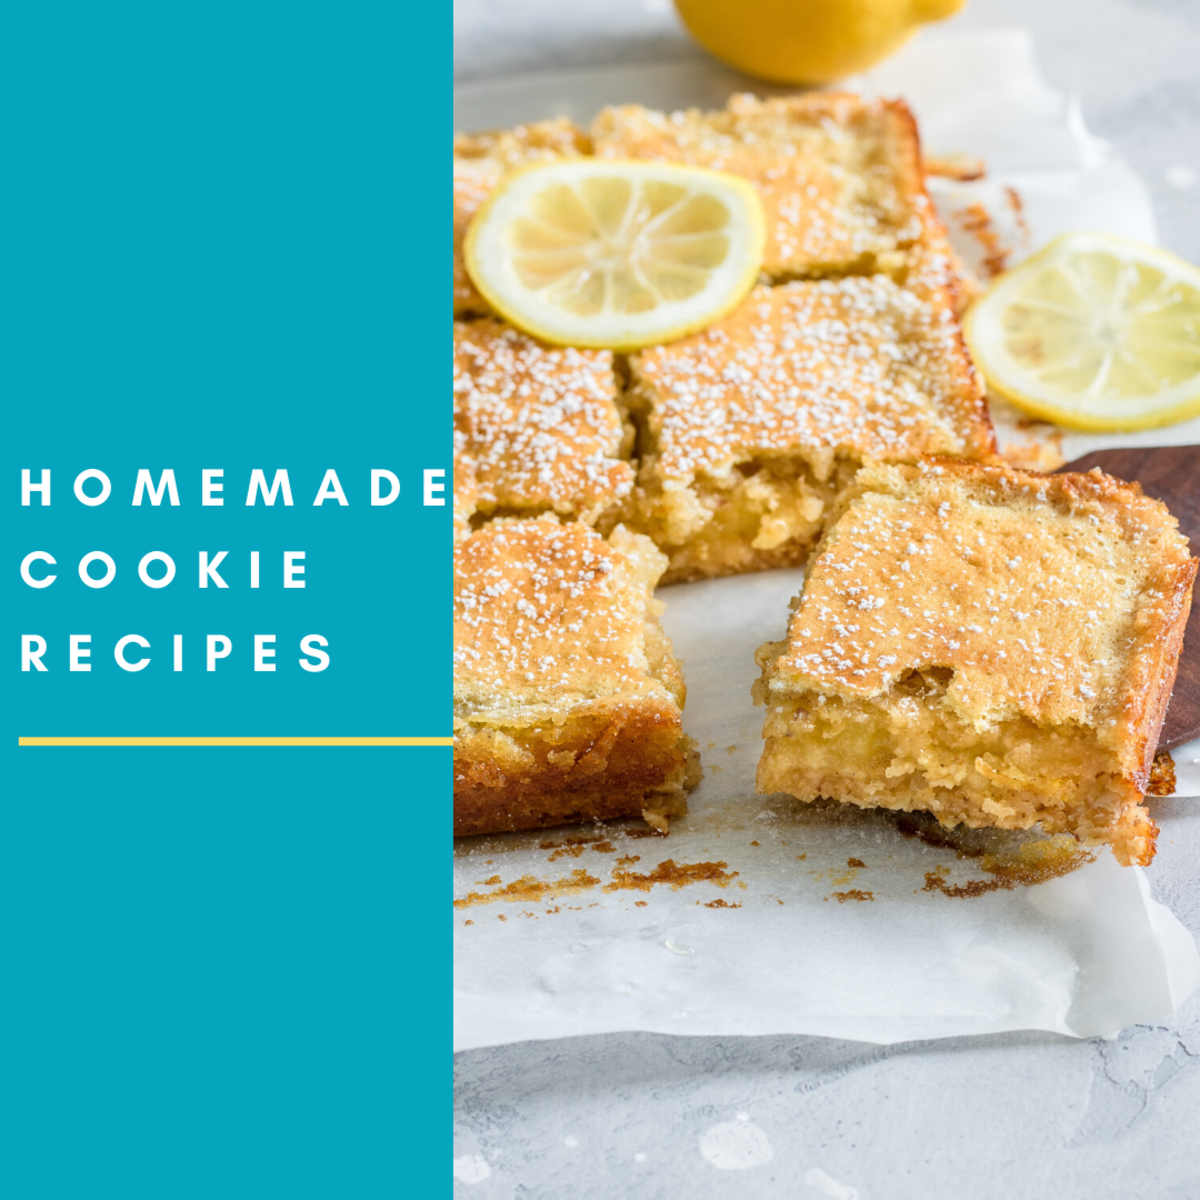 These cookie recipes are great for everyone!